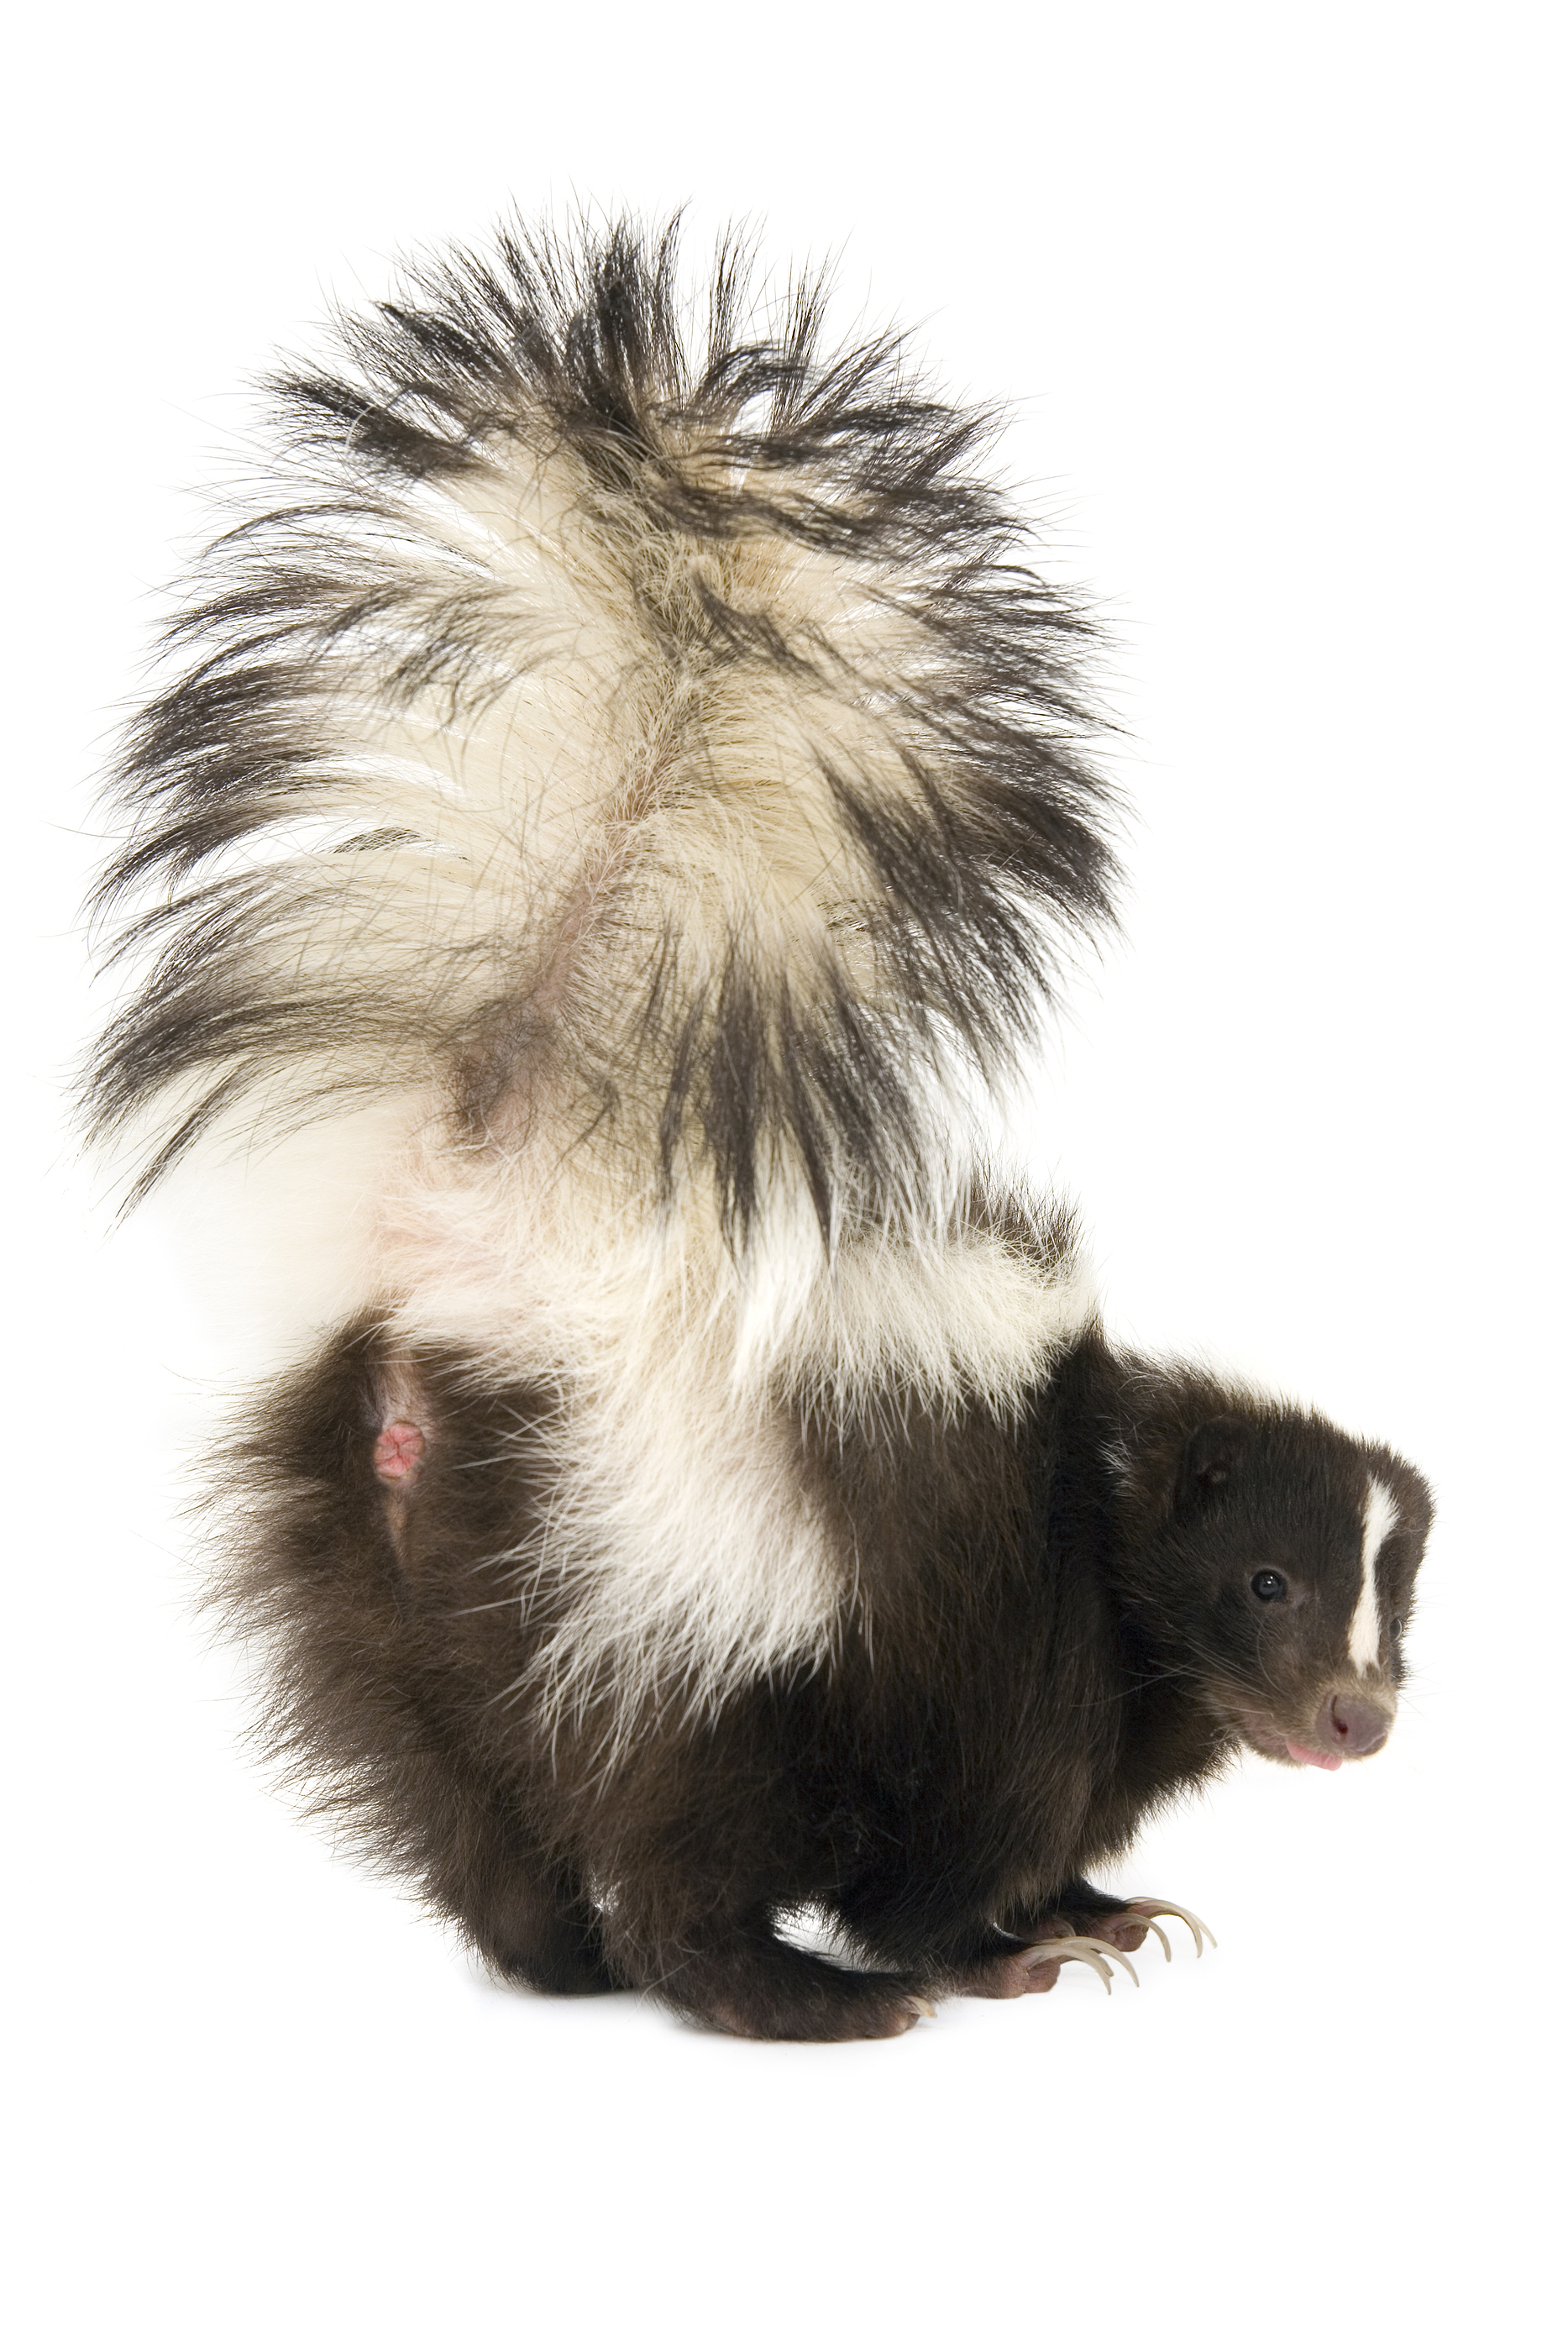 How To Take Care Of A Skunk